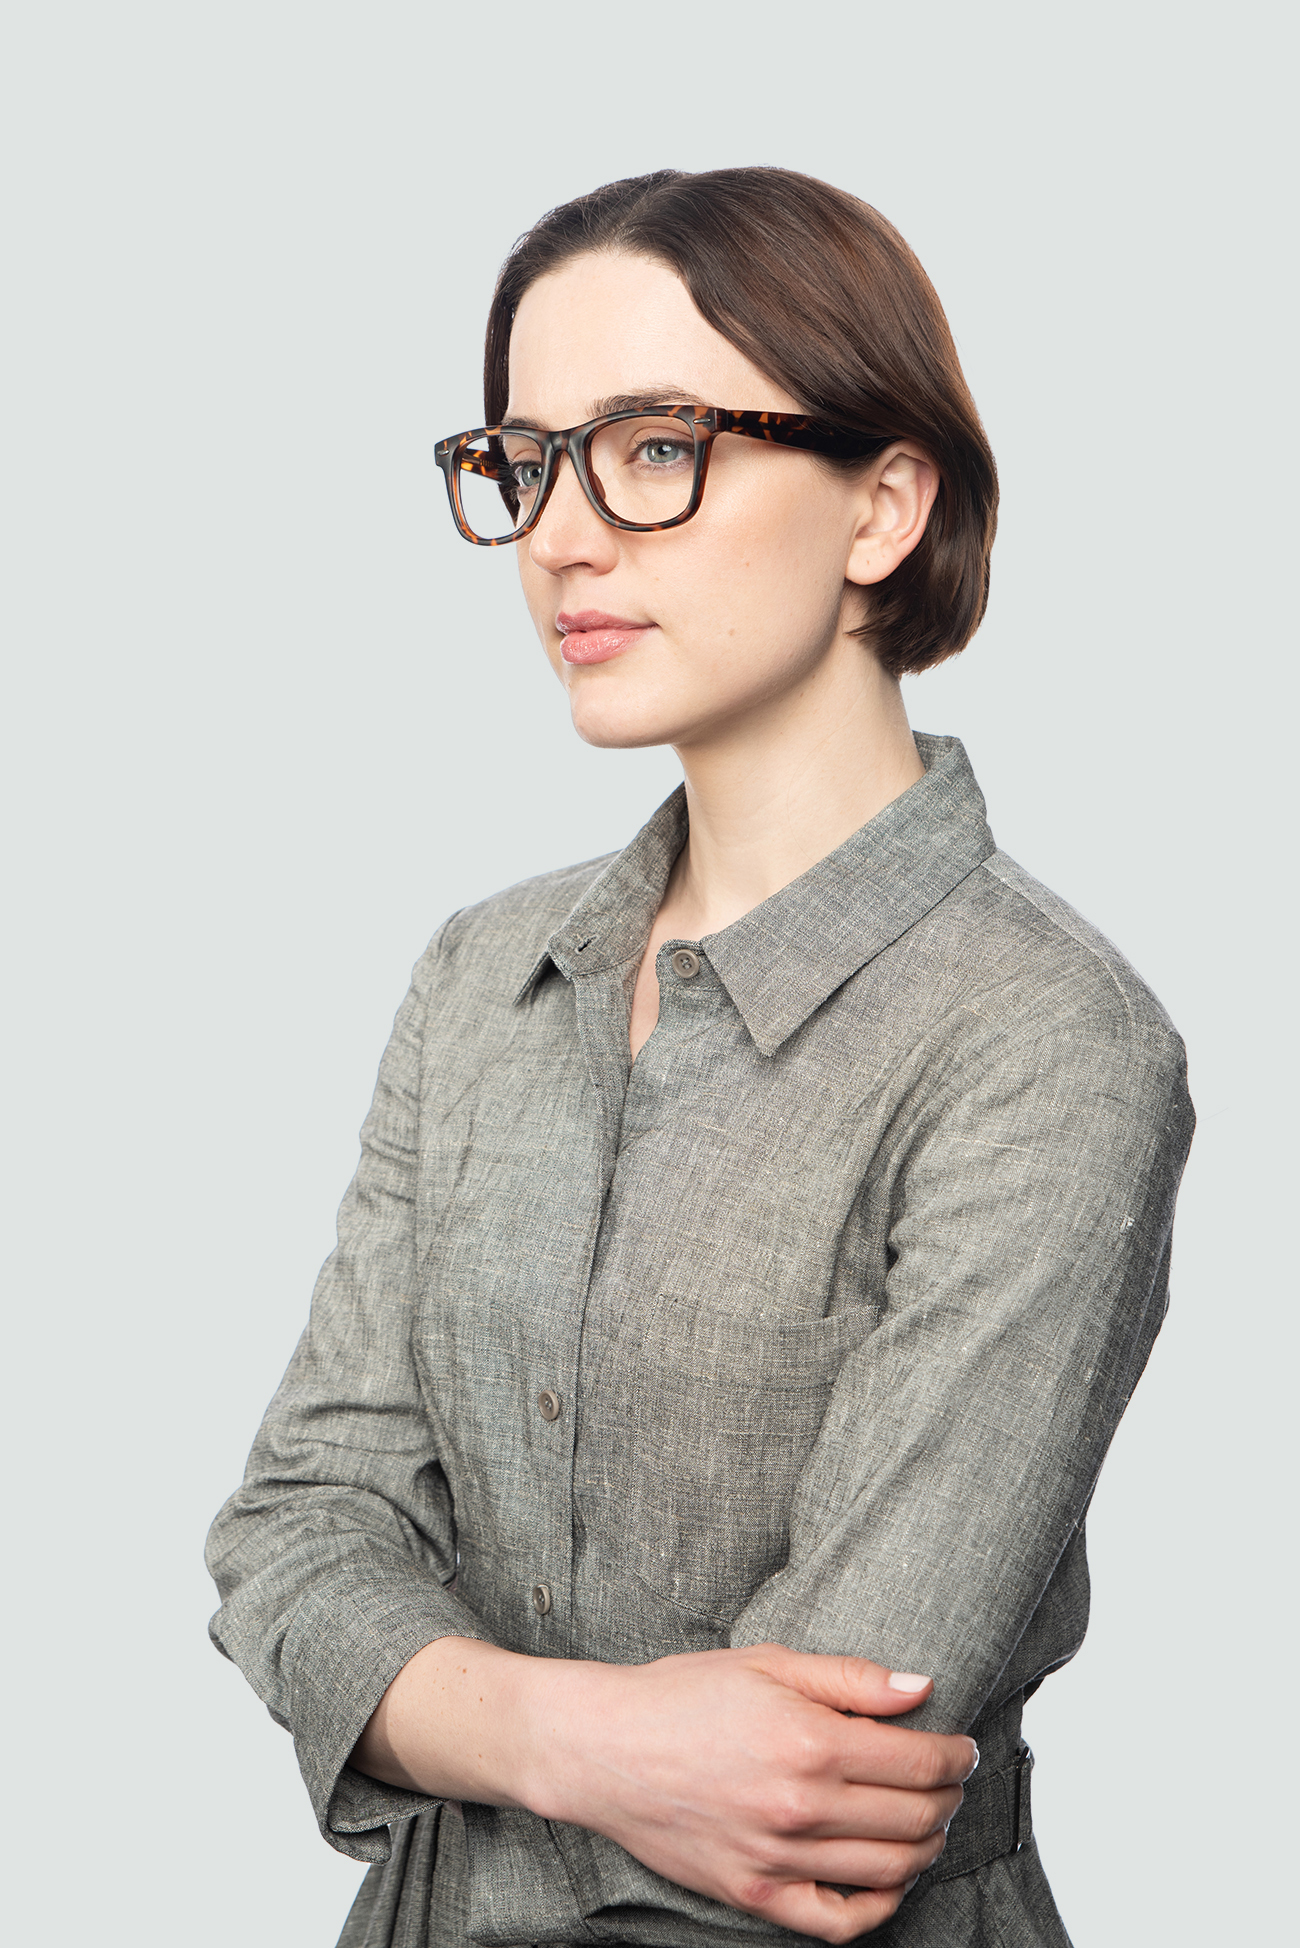 Second model wearing College frames